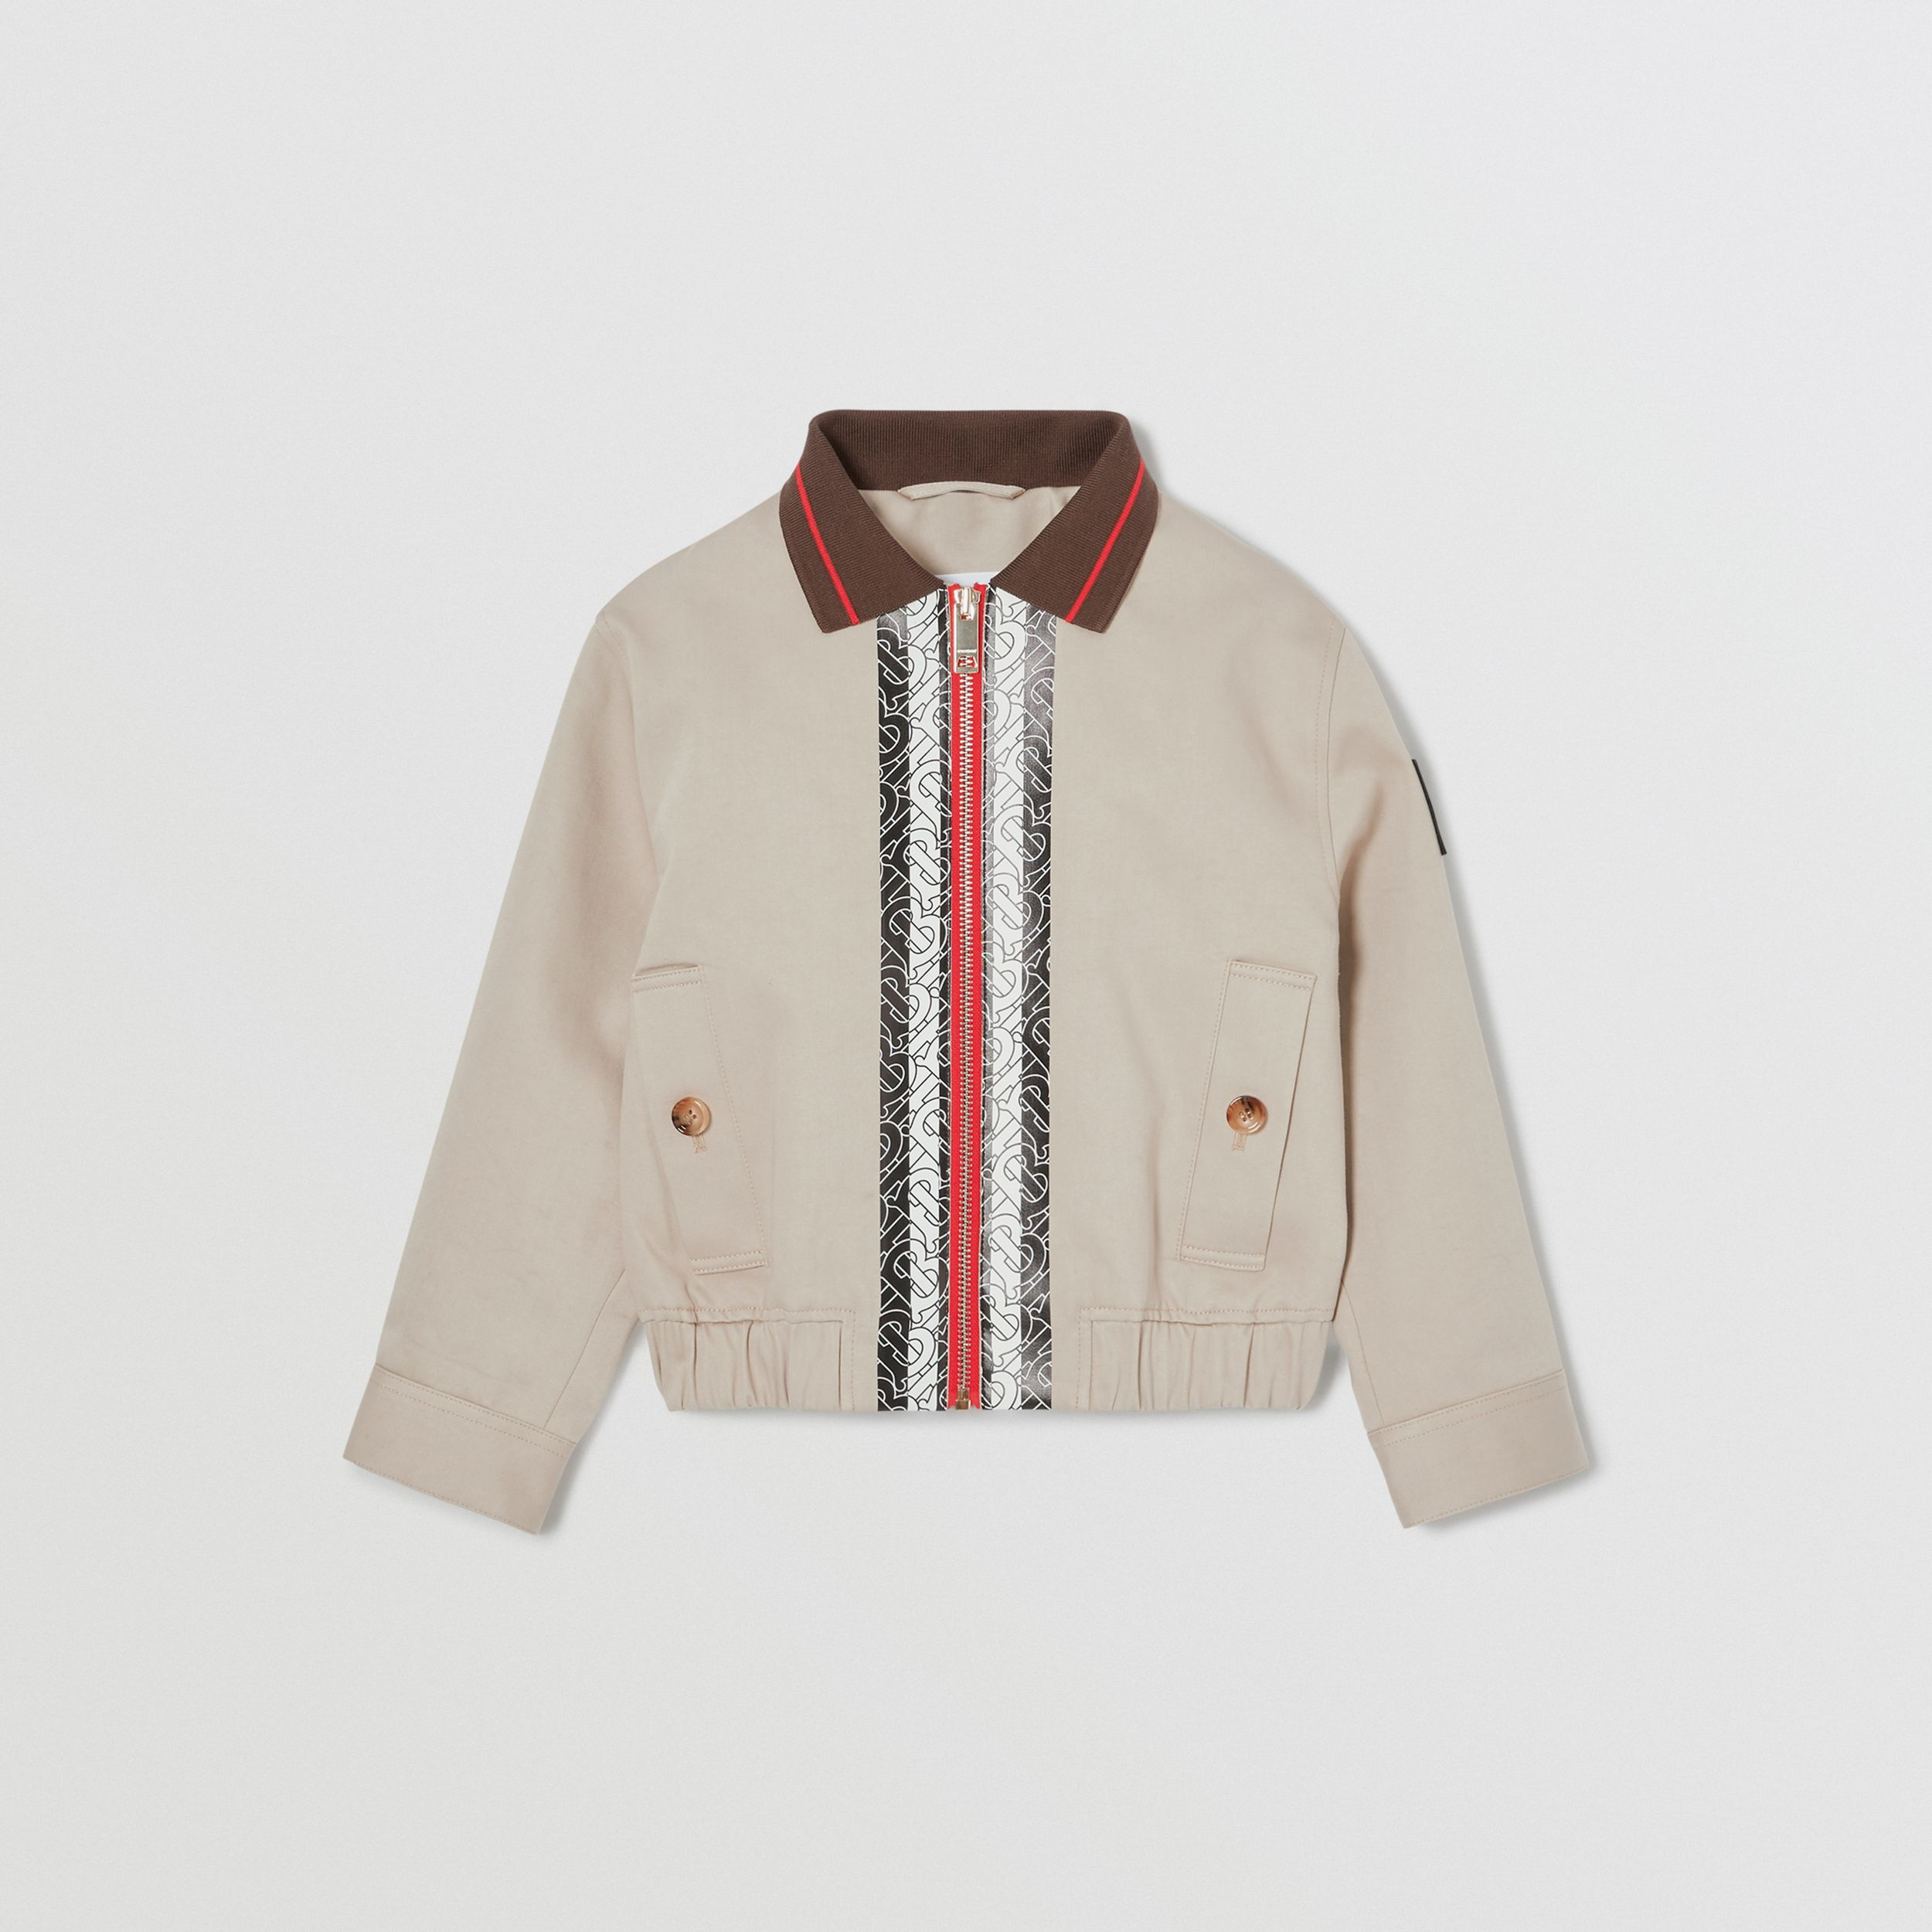 Monogram Stripe Print Cotton Harrington Jacket in Stone | Burberry - 1